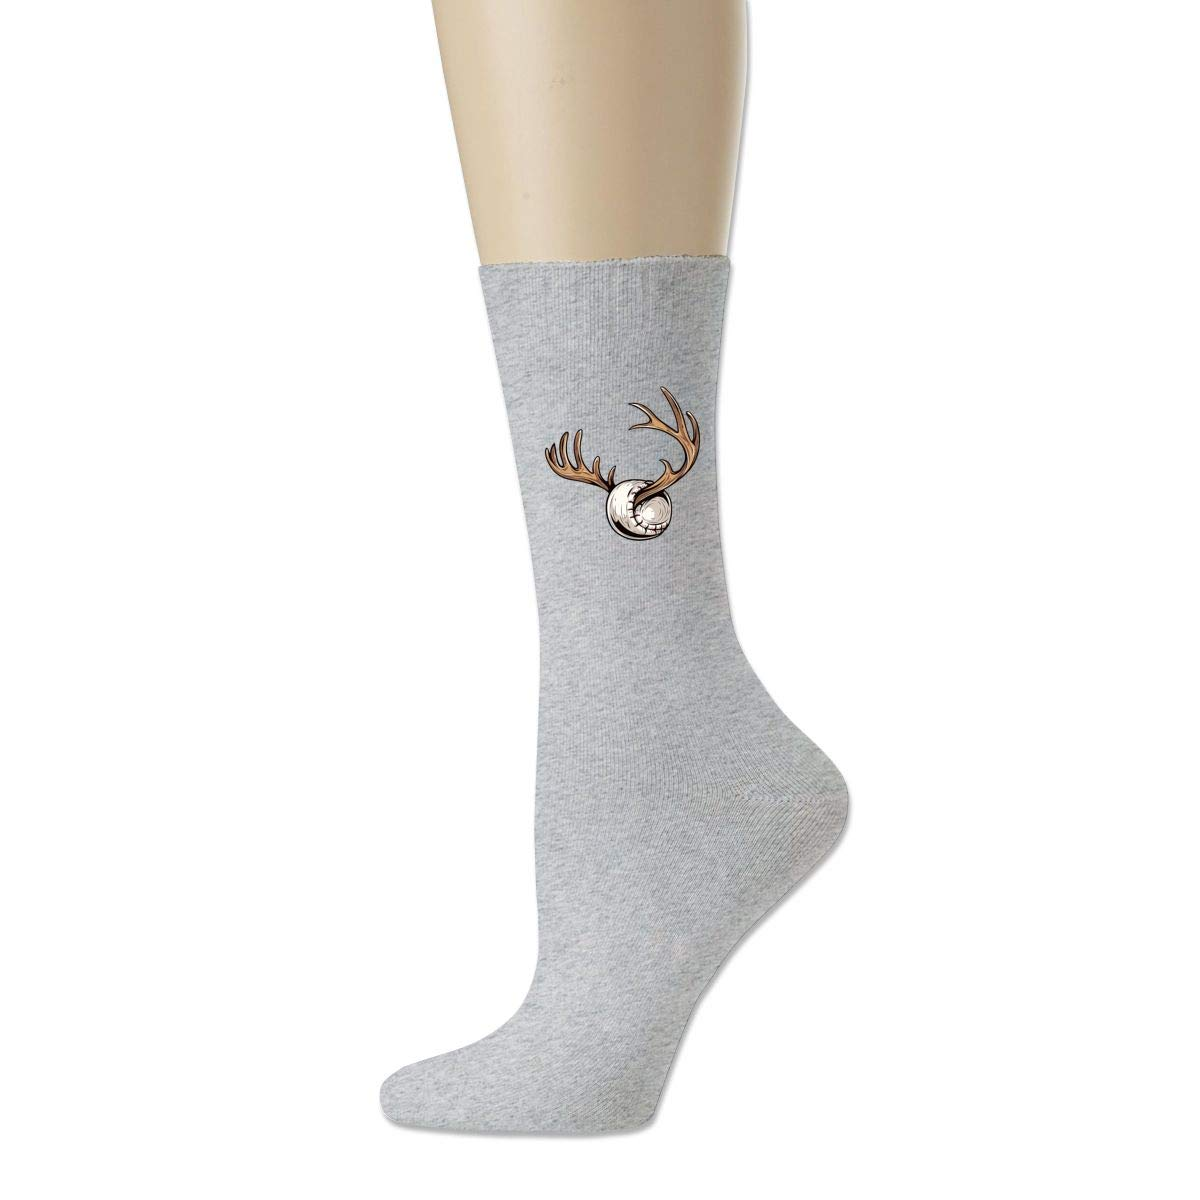 Women High Ankle Cotton Crew Socks Baseball Art Picture Casual Sport Stocking